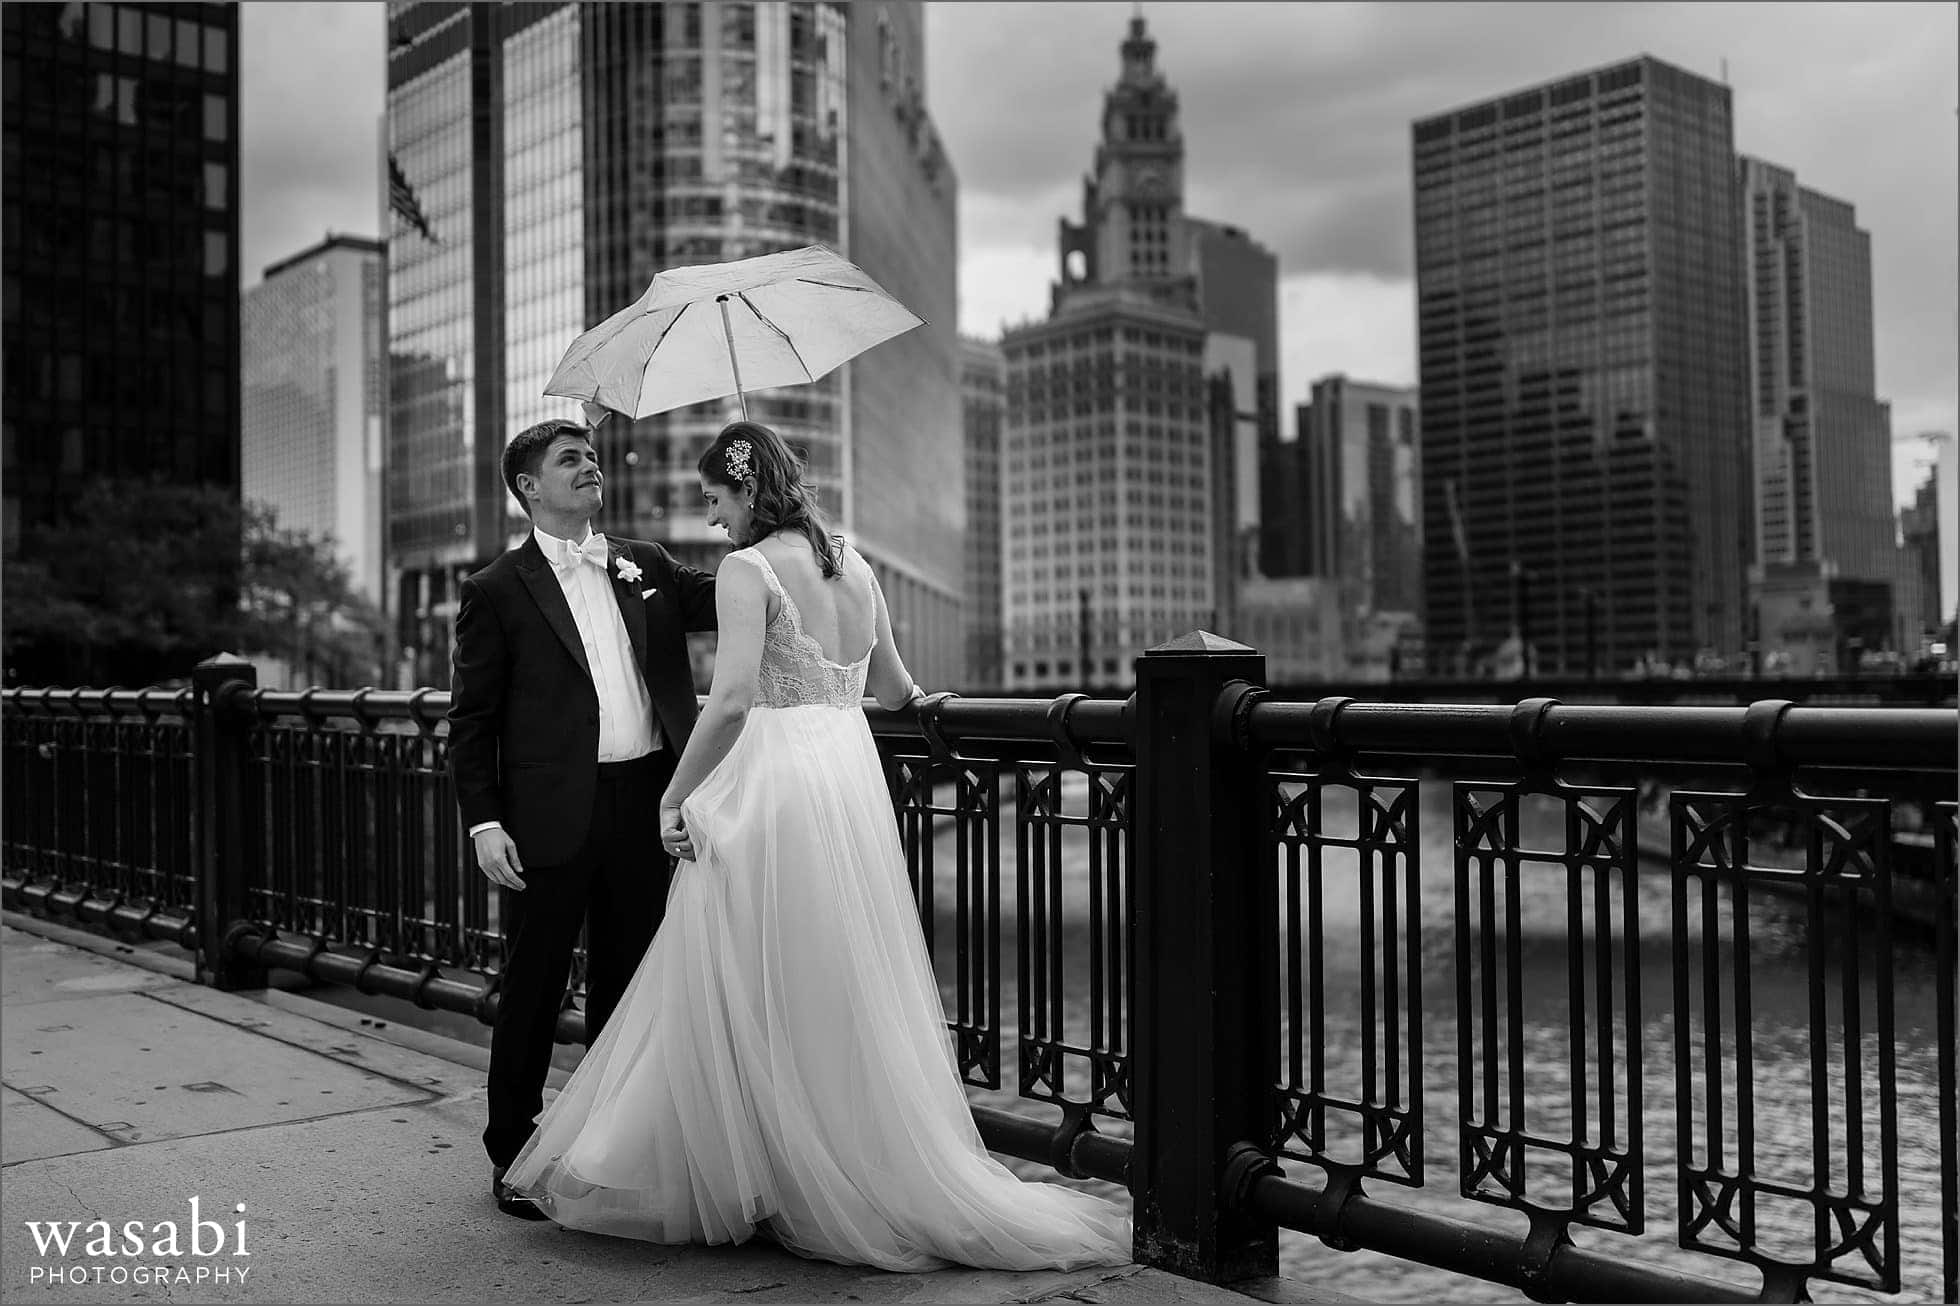 bride and groom stand under an umbrella during a rainy wedding day on State Street bridge